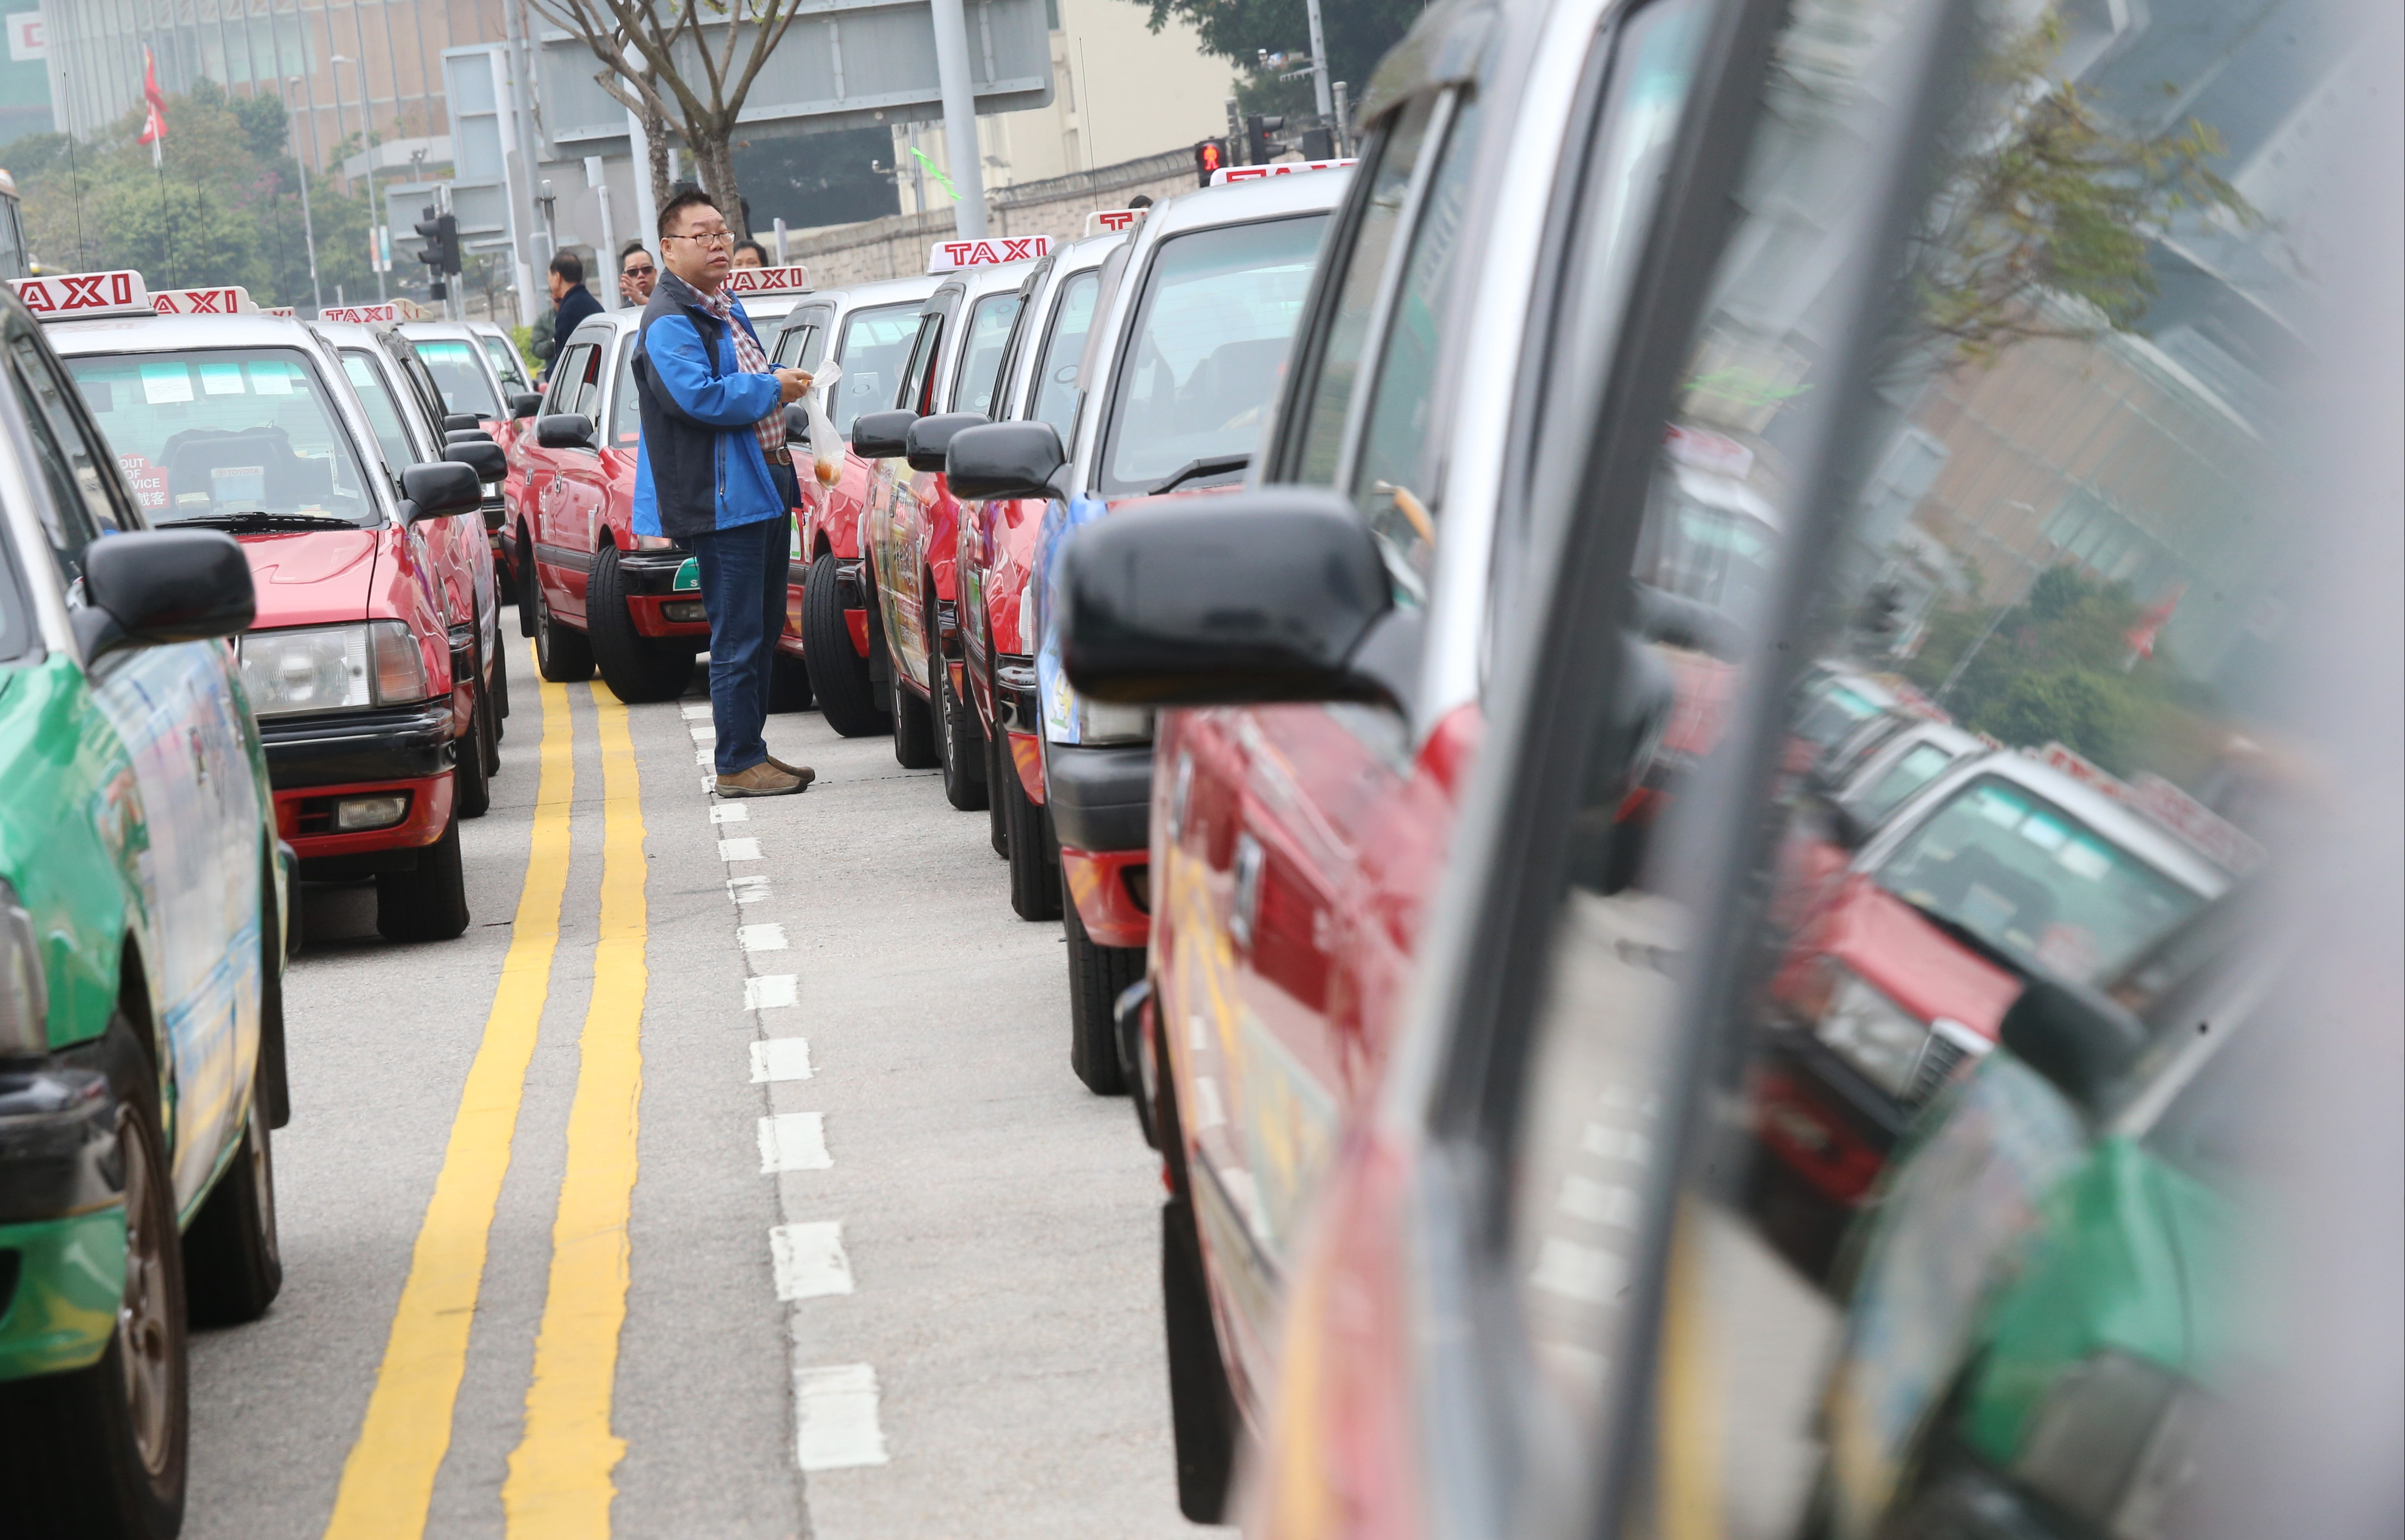 b219a295d7 Why shabby taxis rule Hong Kong streets … and Uber can t get a break